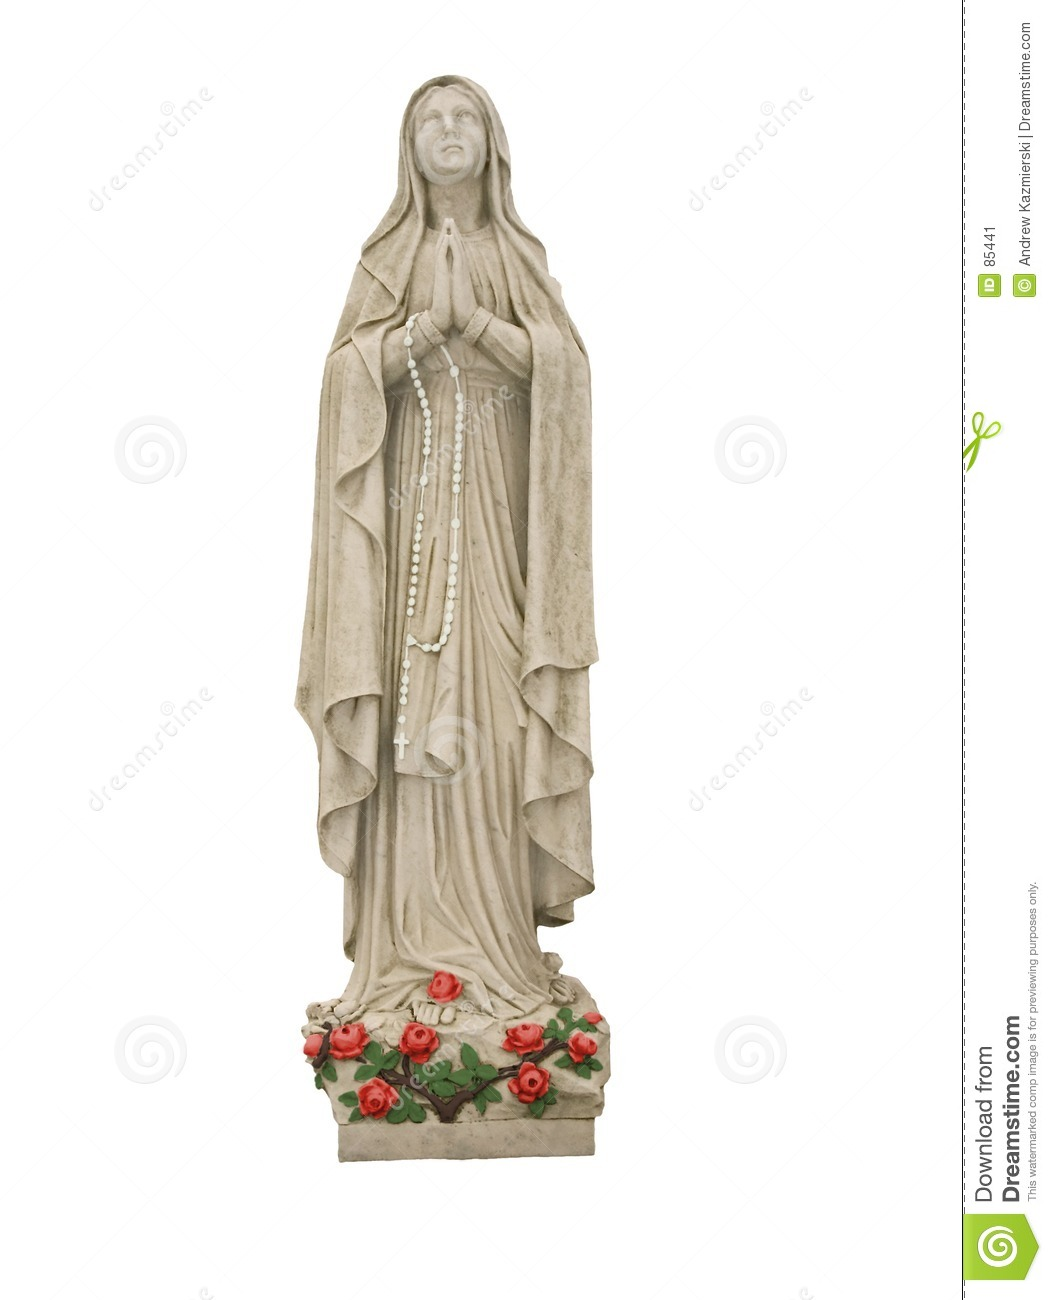 Statue of mary clipart #16